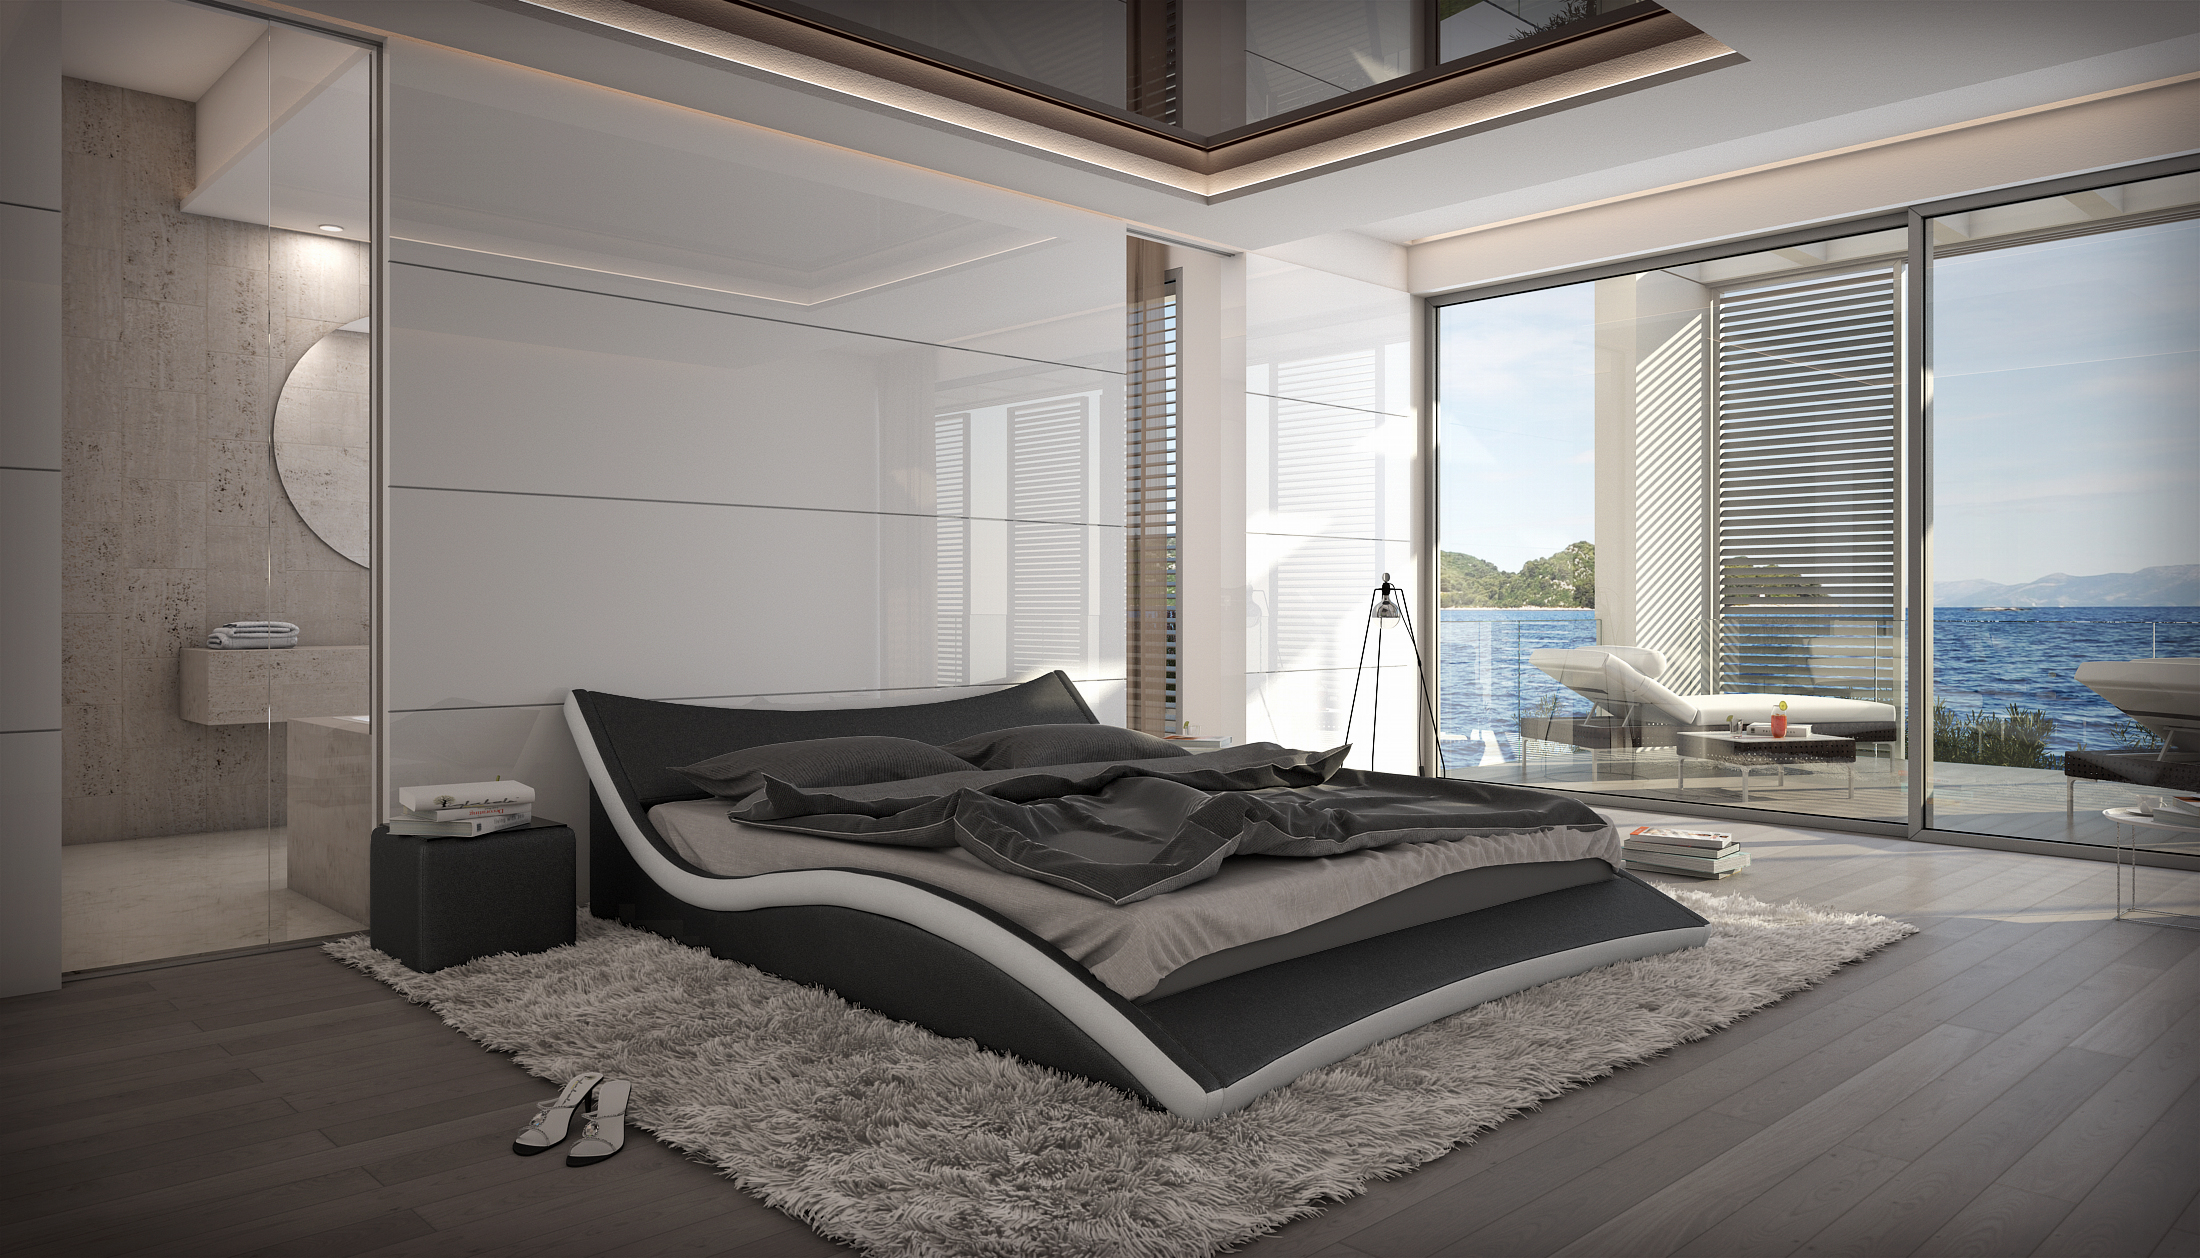 Chambre Luxe Moderne Ideas - Design Trends 2017 - shopmakers.us